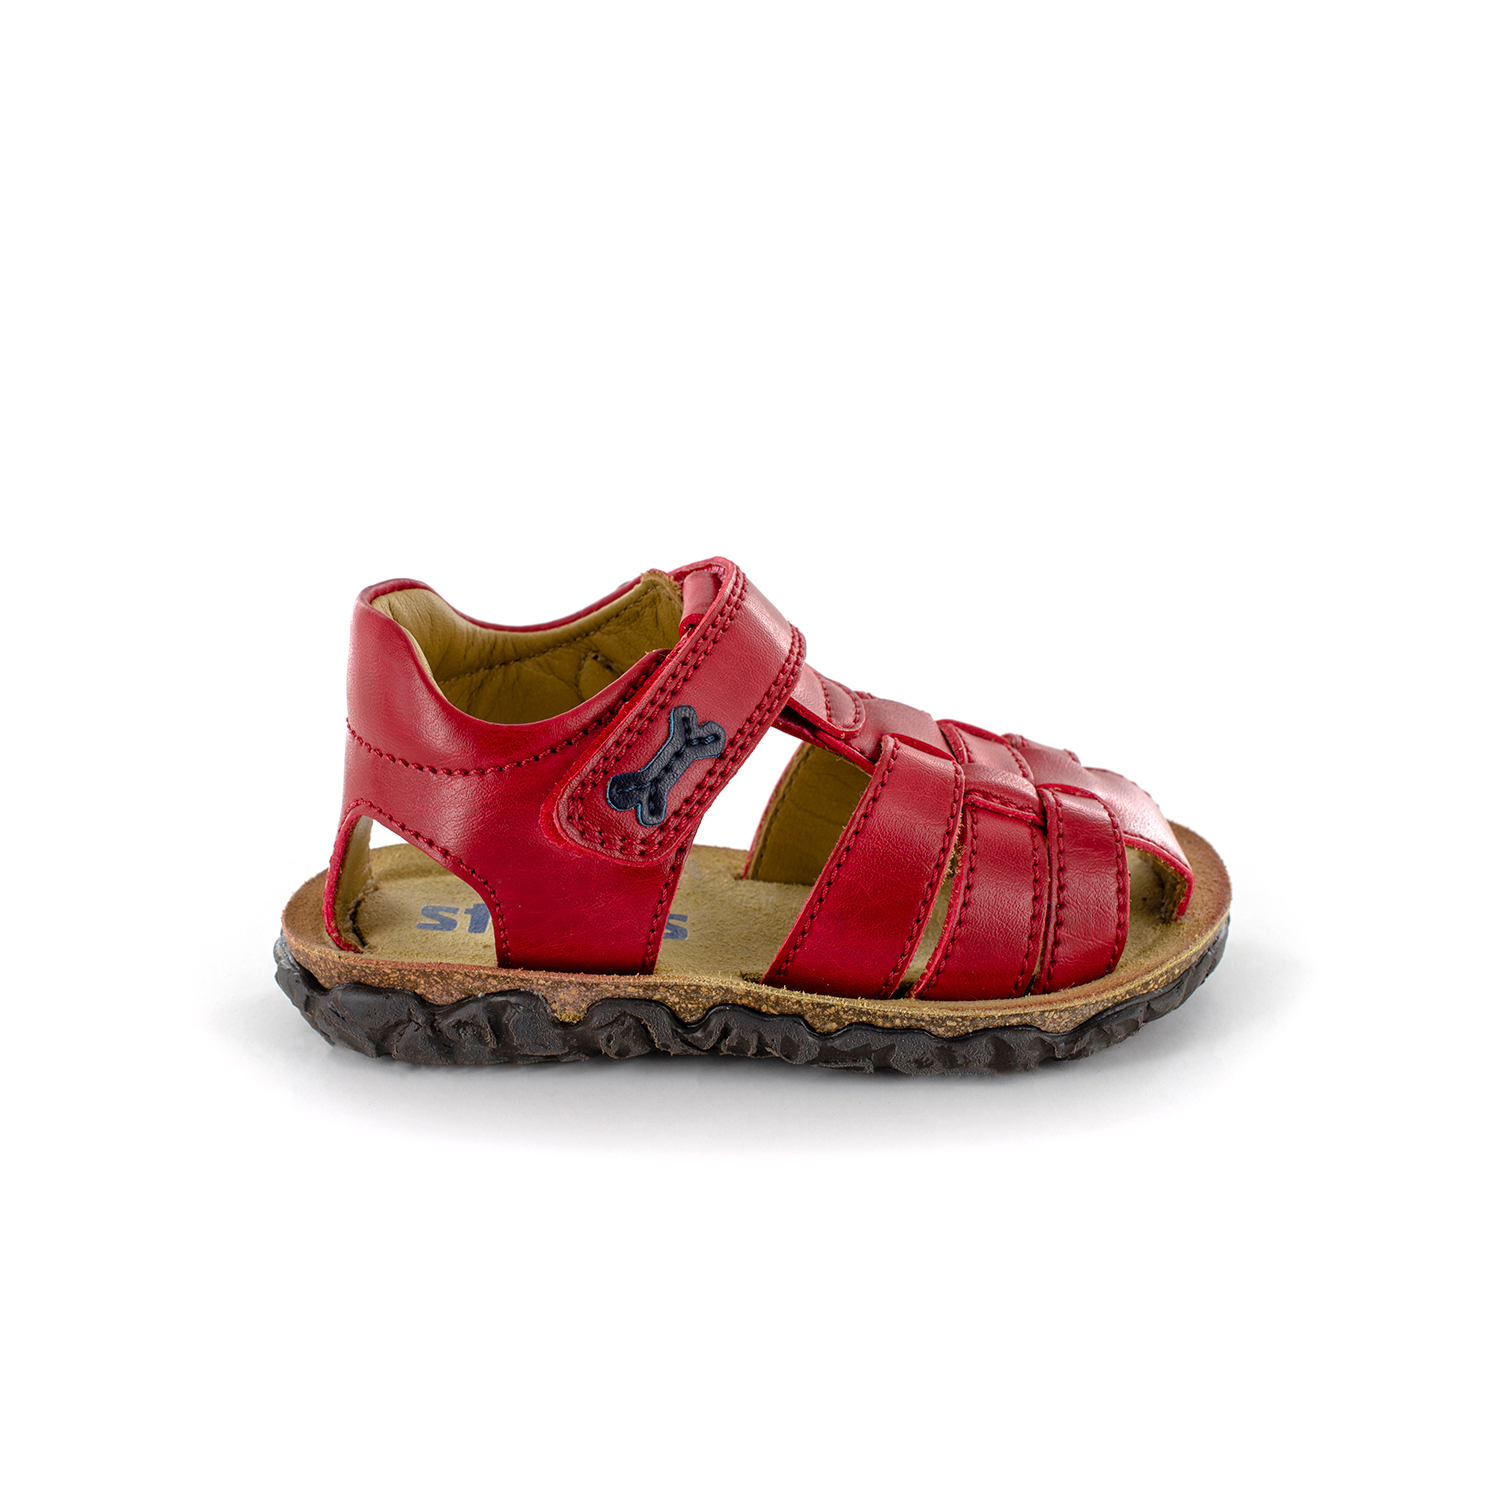 RAXI eco red